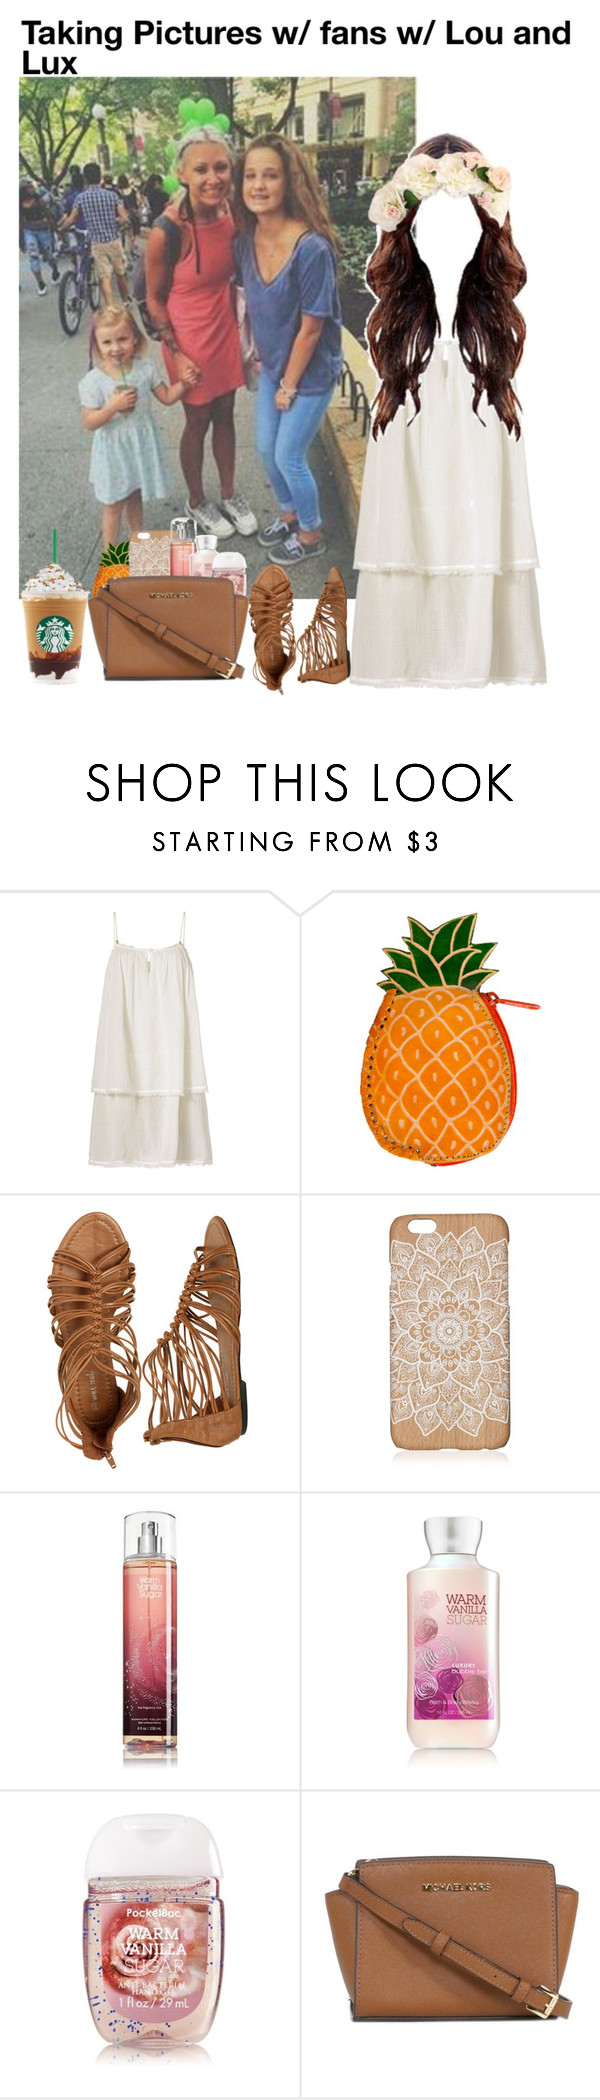 """""""Taking Pictures w/ fans w/ Lou and Lux"""" by grace-food-lover ❤ liked on Polyvore featuring Heidi Klein, Wet Seal and Michael Kors"""